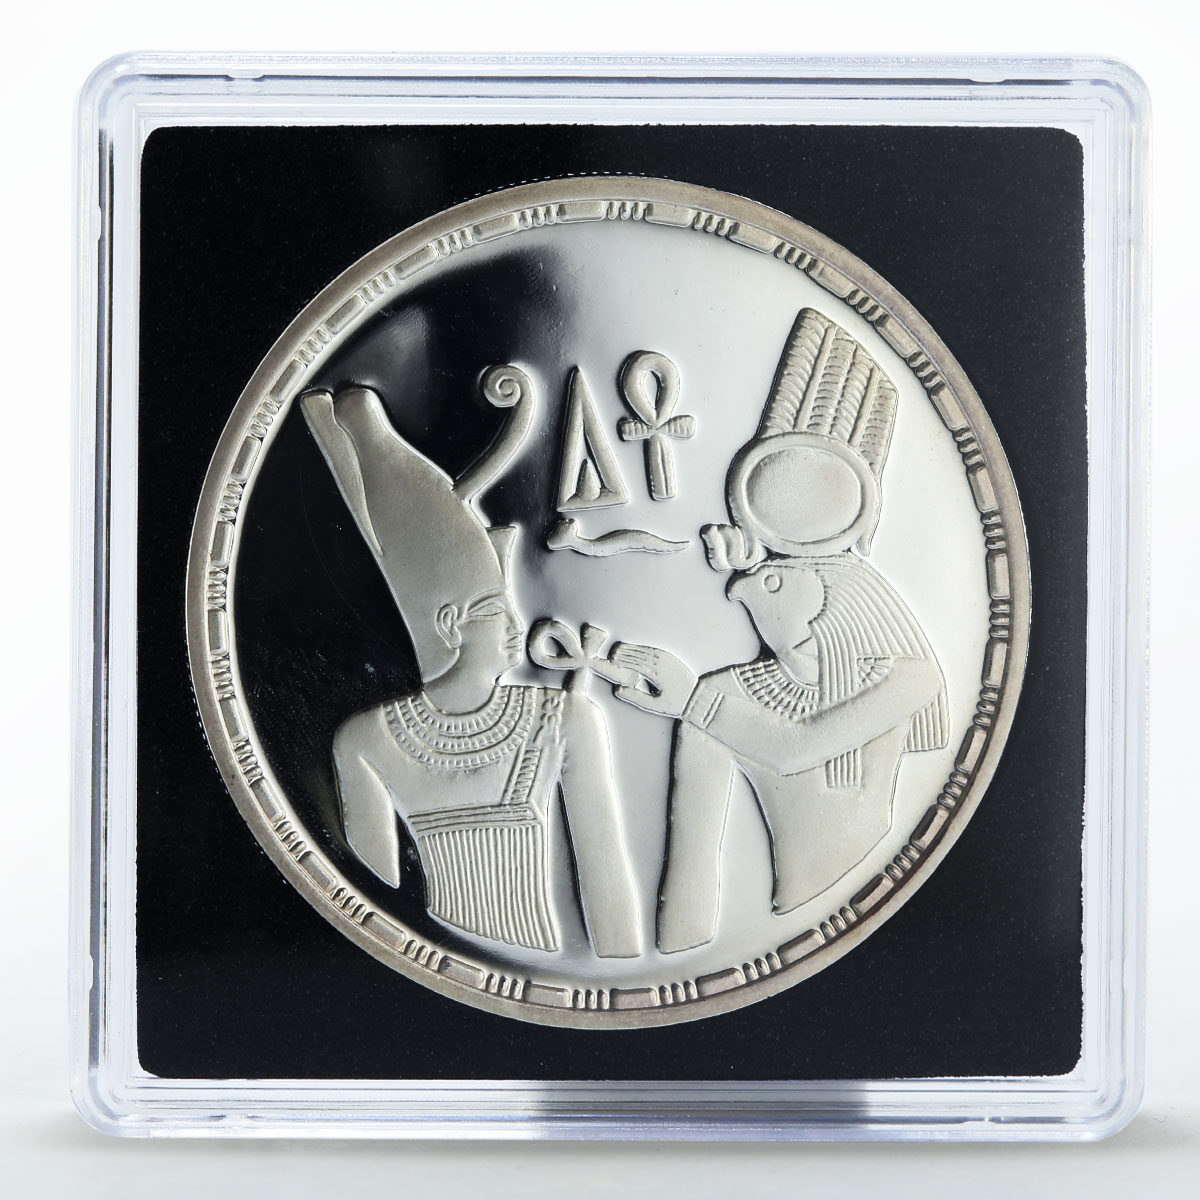 Egypt 5 pounds RE Ankhto Sesostris I Double Crown proof silver coin 1994